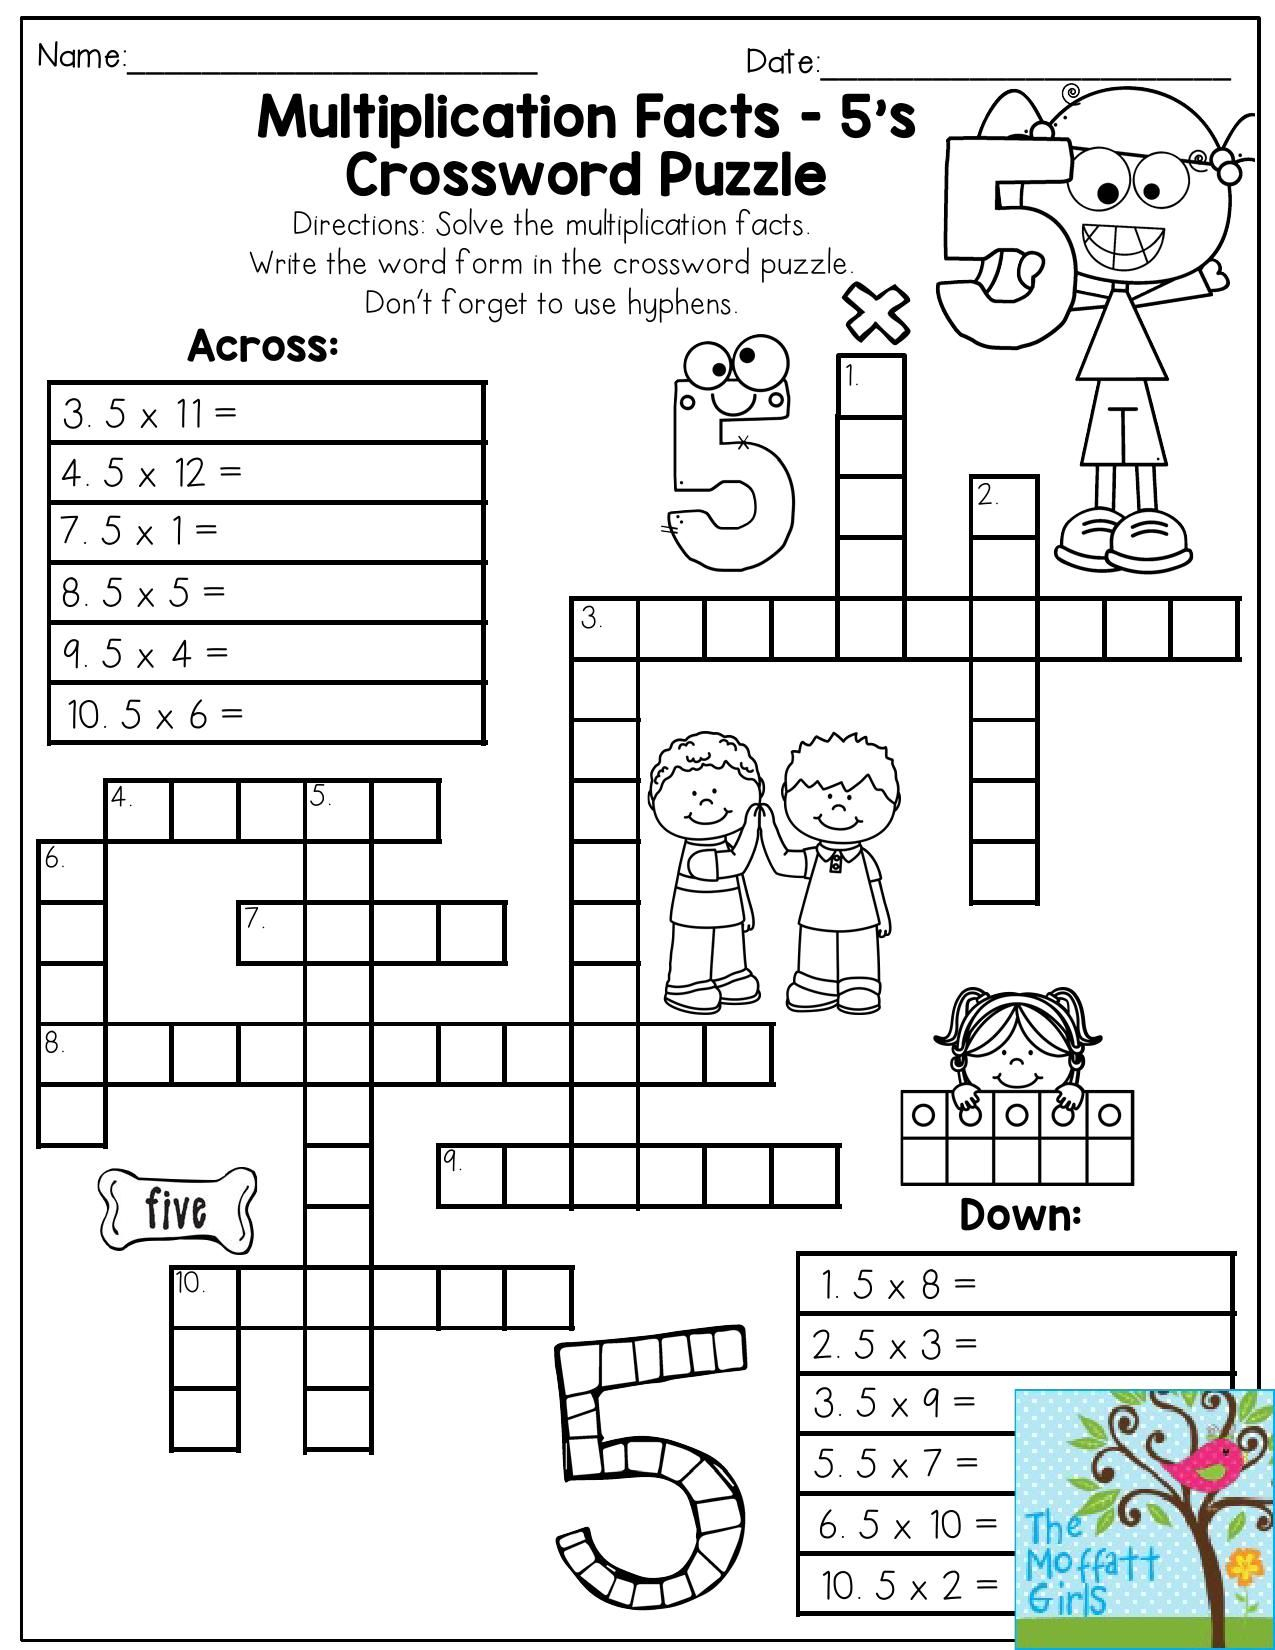 Multiplication Facts Crossword Puzzle- Third Grade Students Love - Printable Crossword Puzzles For 3Rd Graders